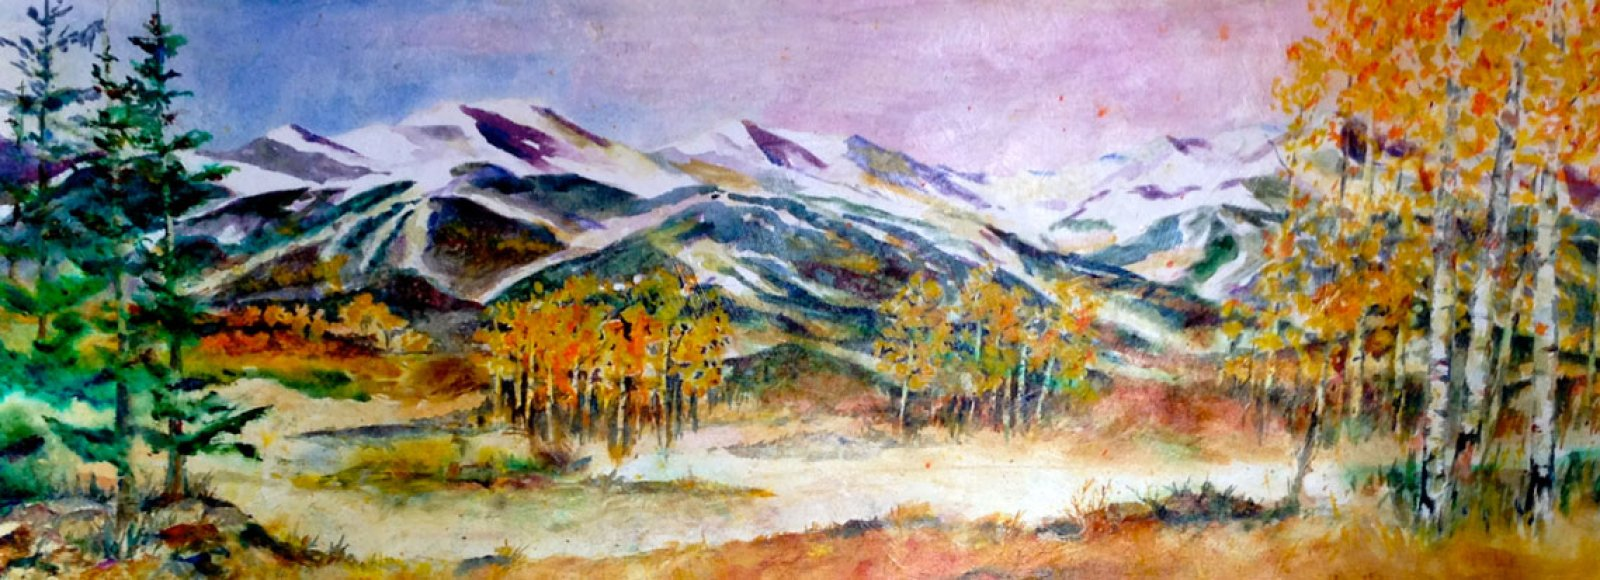 Art colorado springs - Colorado Springs Watercolor Artist